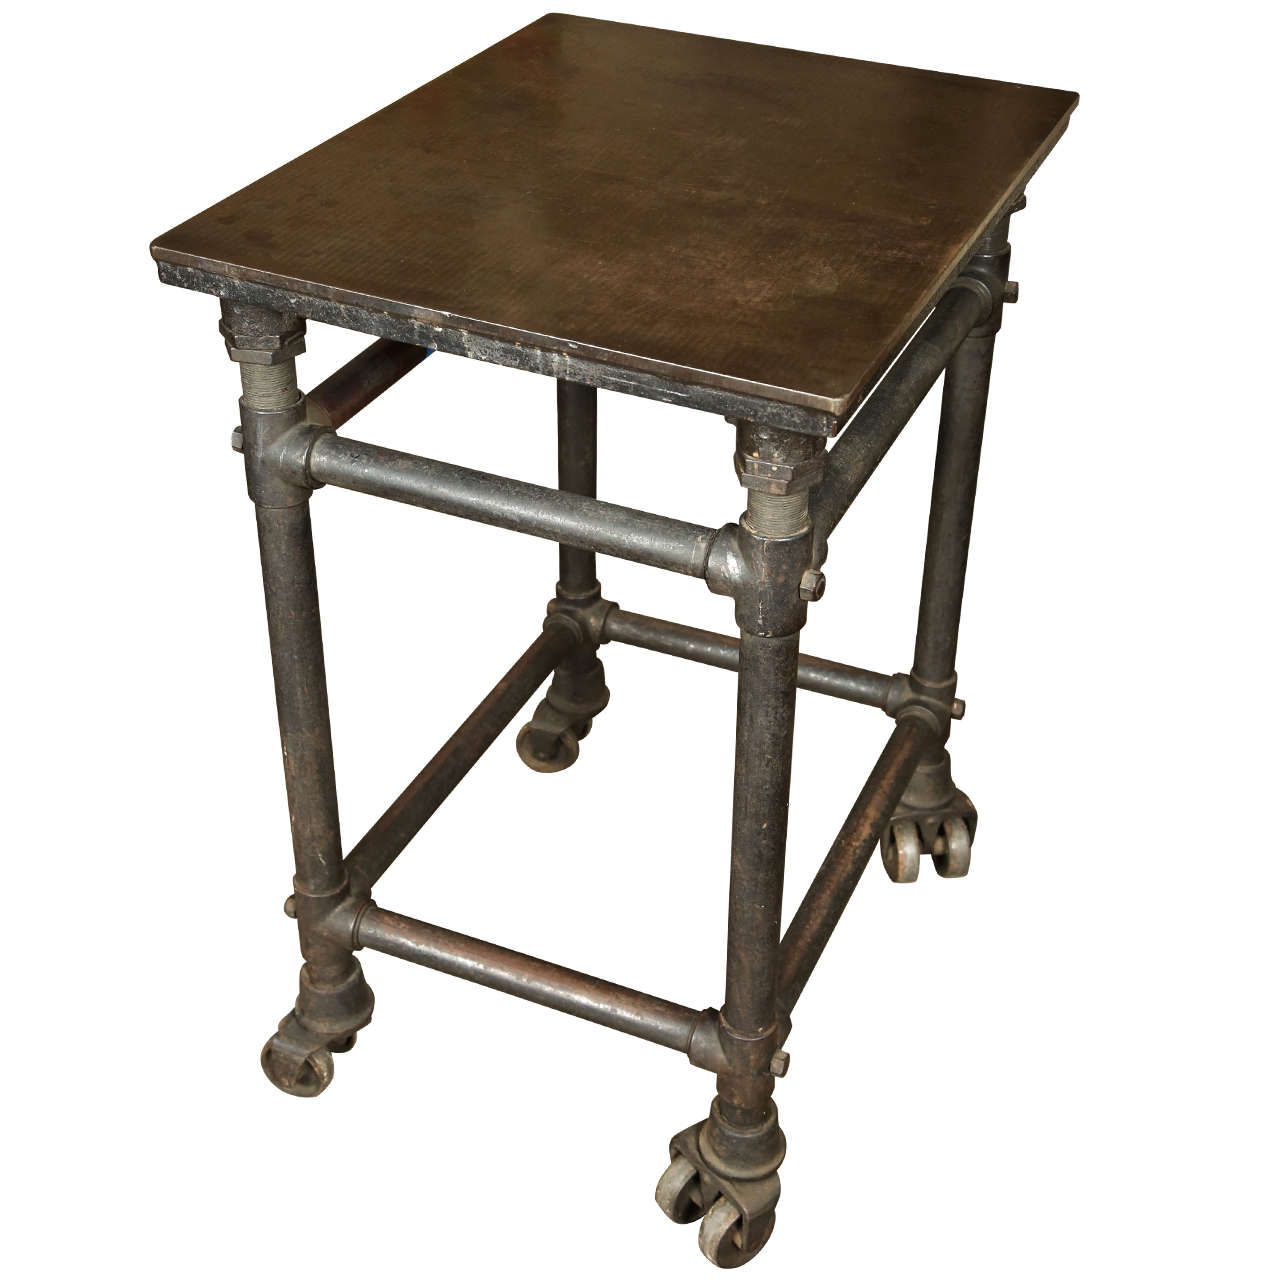 Industrial Coffee Table On Wheels At 1stdibs: Cast Iron Industrial Table With Dual Wheels At 1stdibs